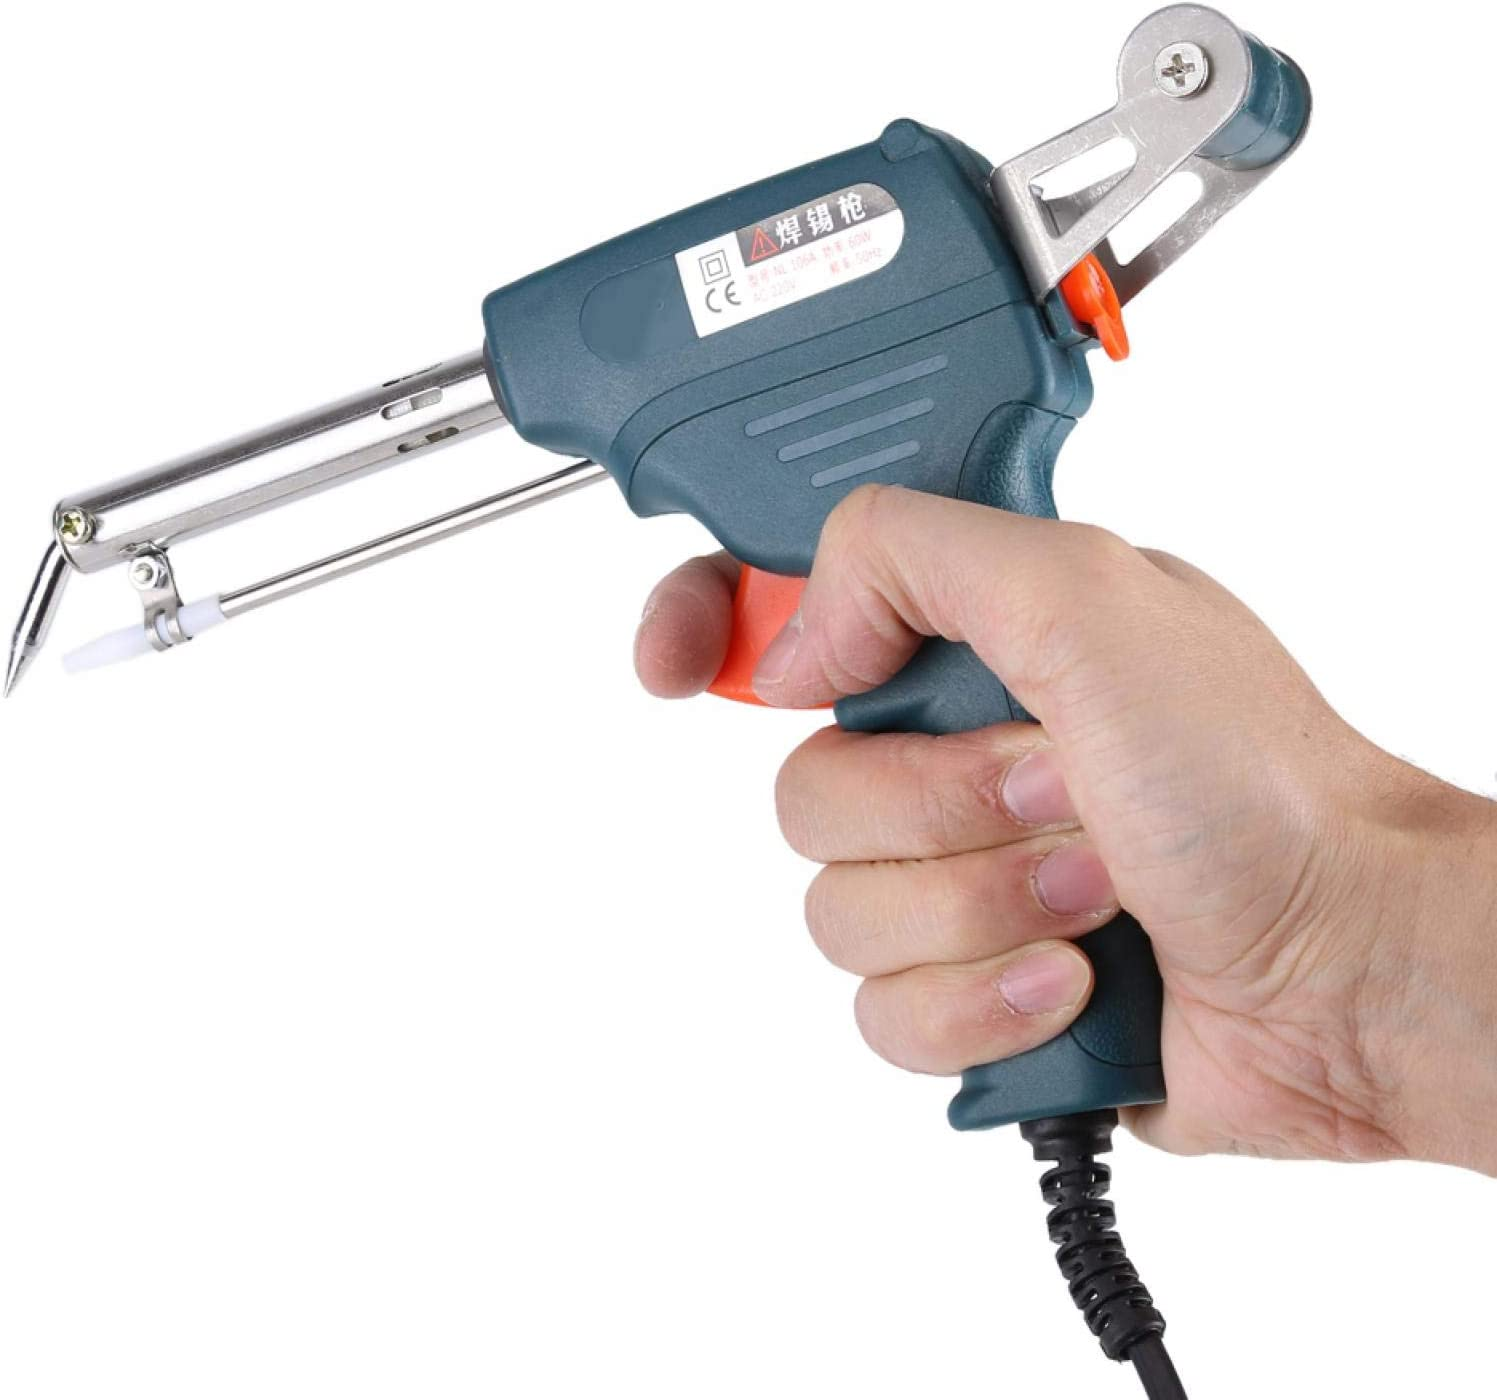 Uxsiya Welding Our shop OFFers the lowest price best service Gun Electrical Iron Solderin Free Soldering